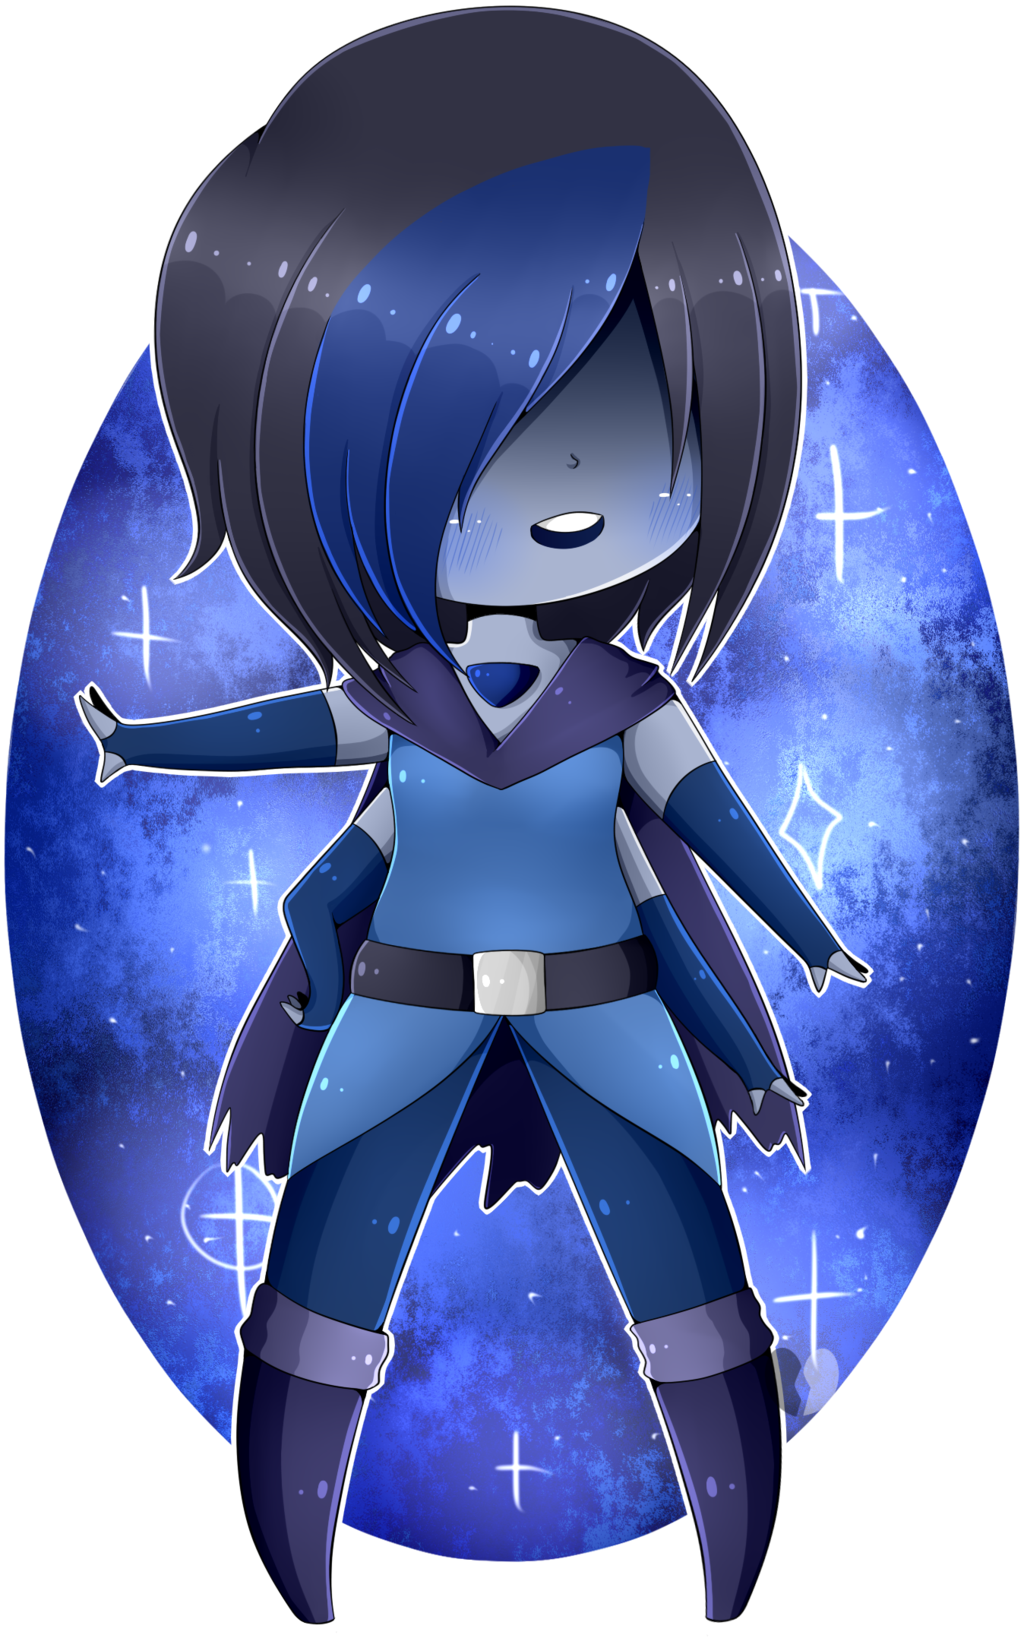 Sodalite by Cain.